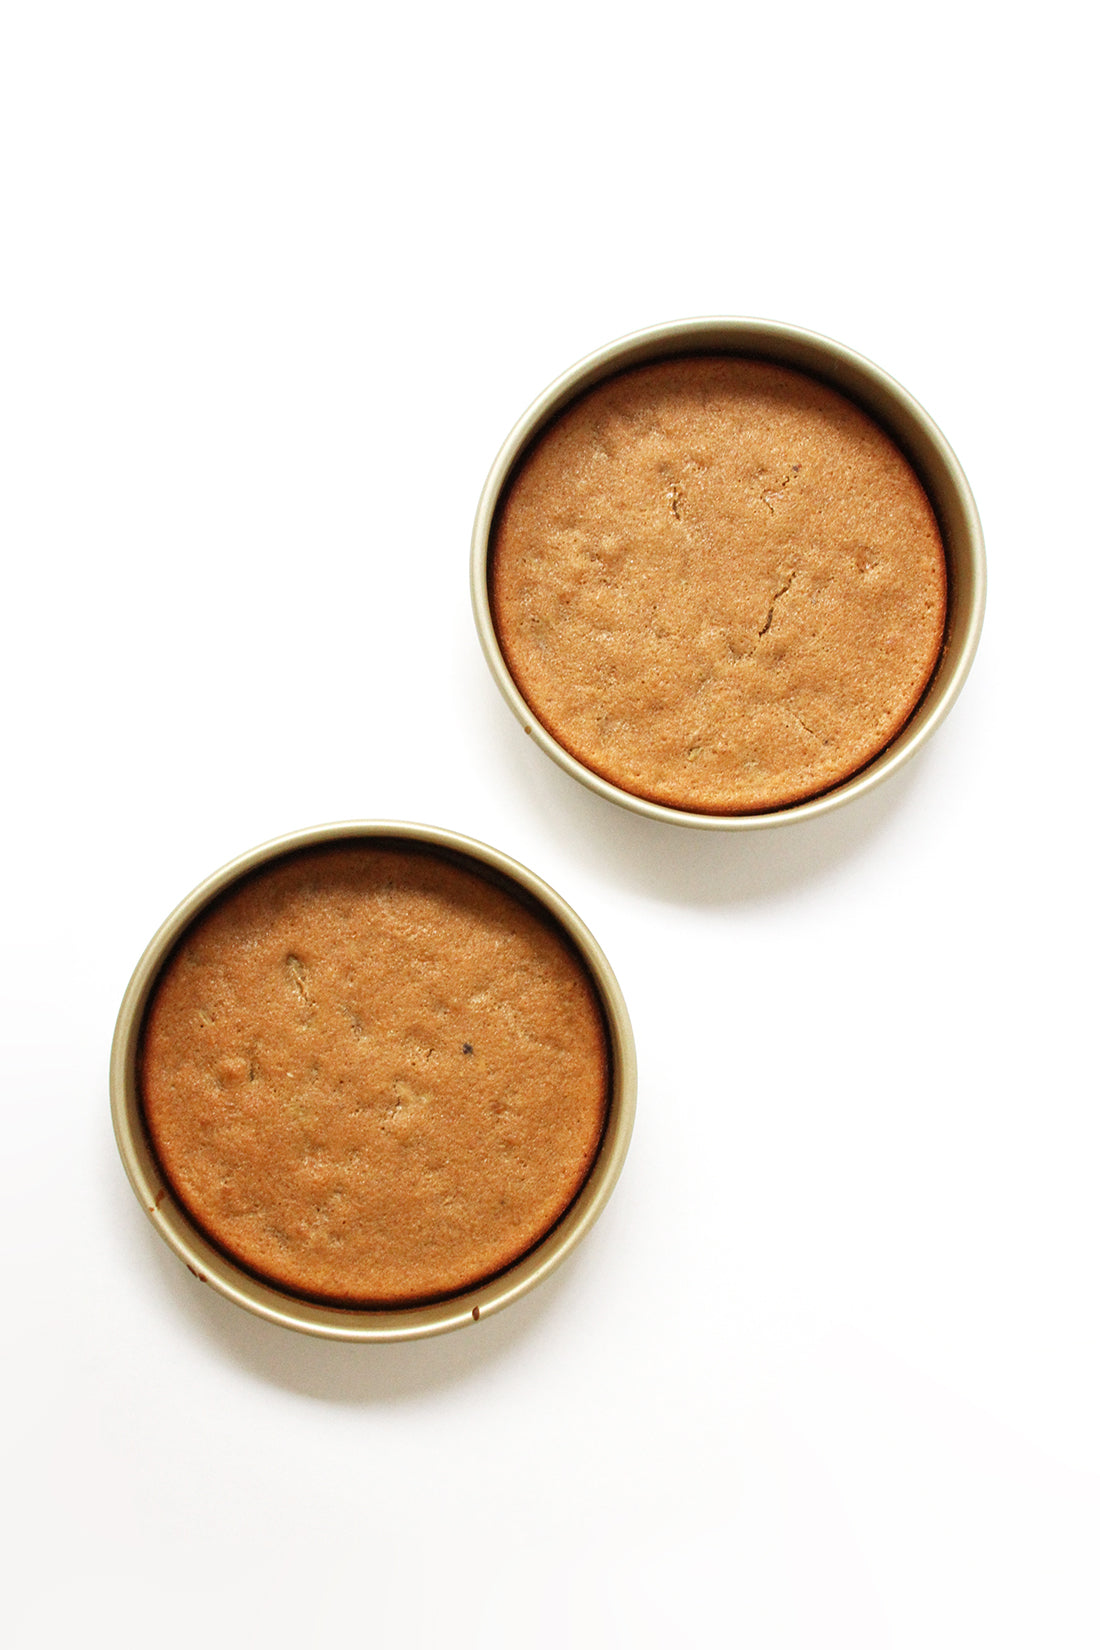 Image from above of two Miss Jones Baking Co Classic Hummingbird Cakes in cake pans